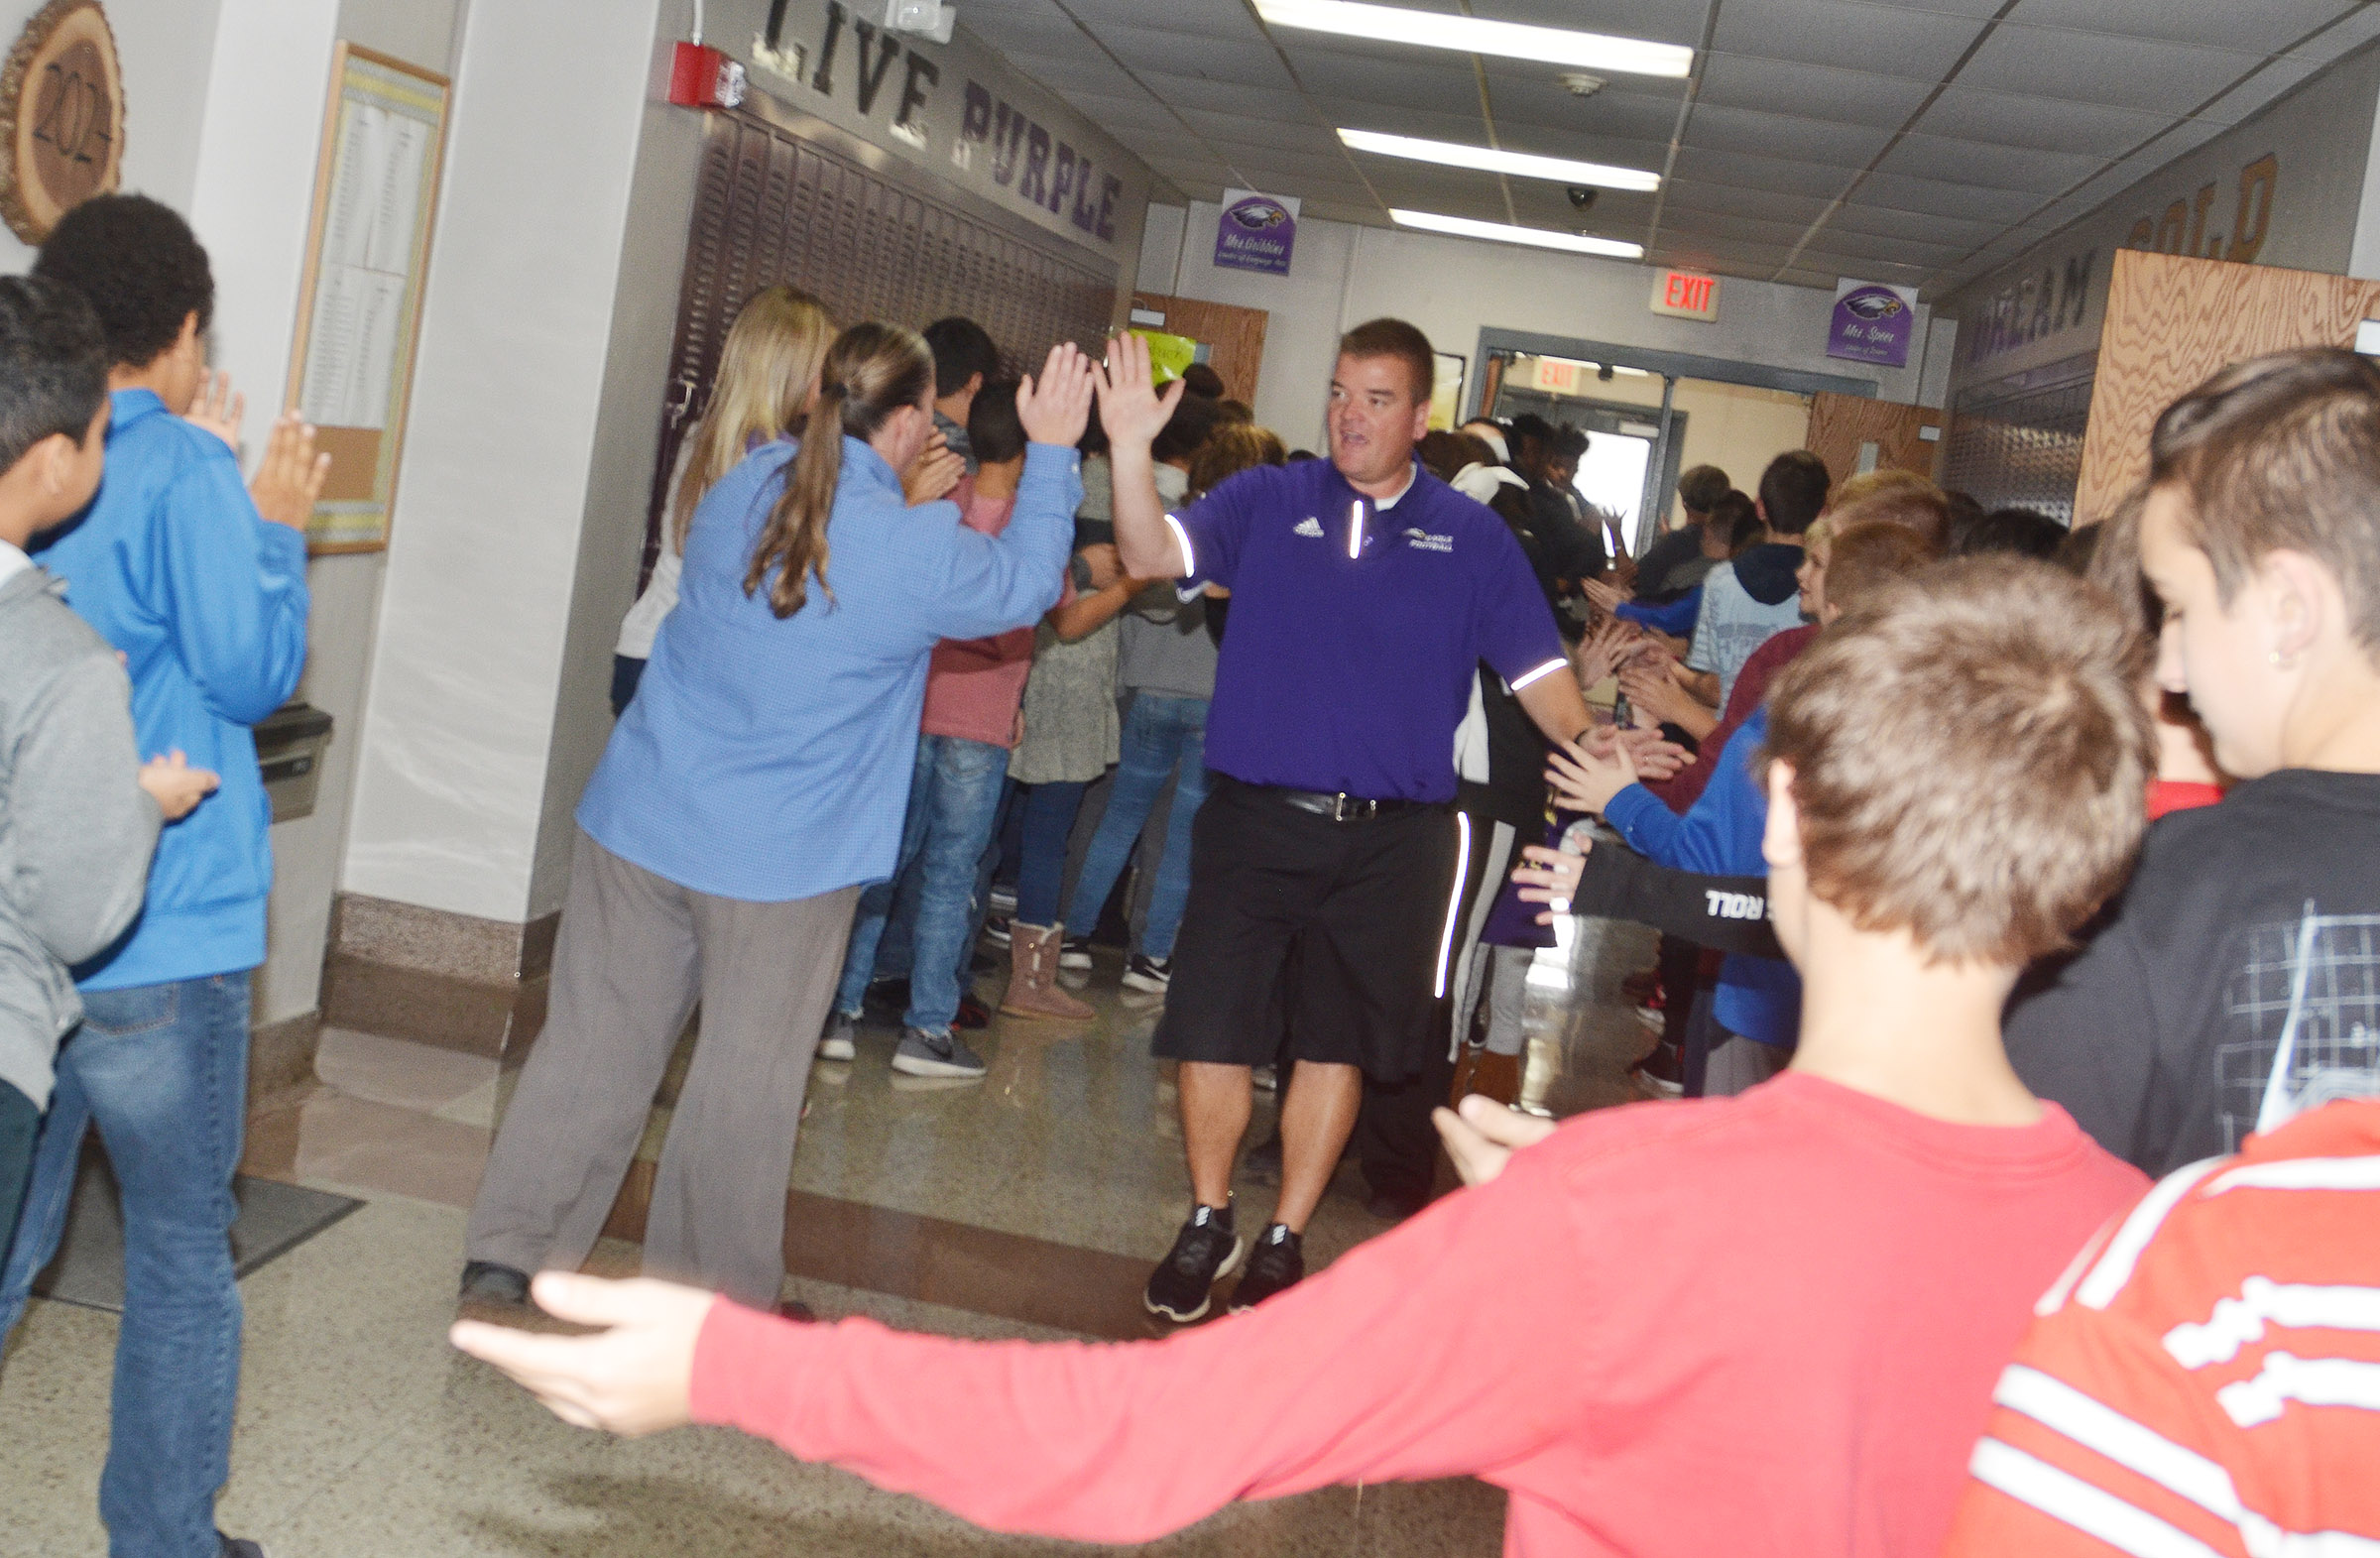 CHS head football coach Dale Estes leads the Eagle Walk through CMS.